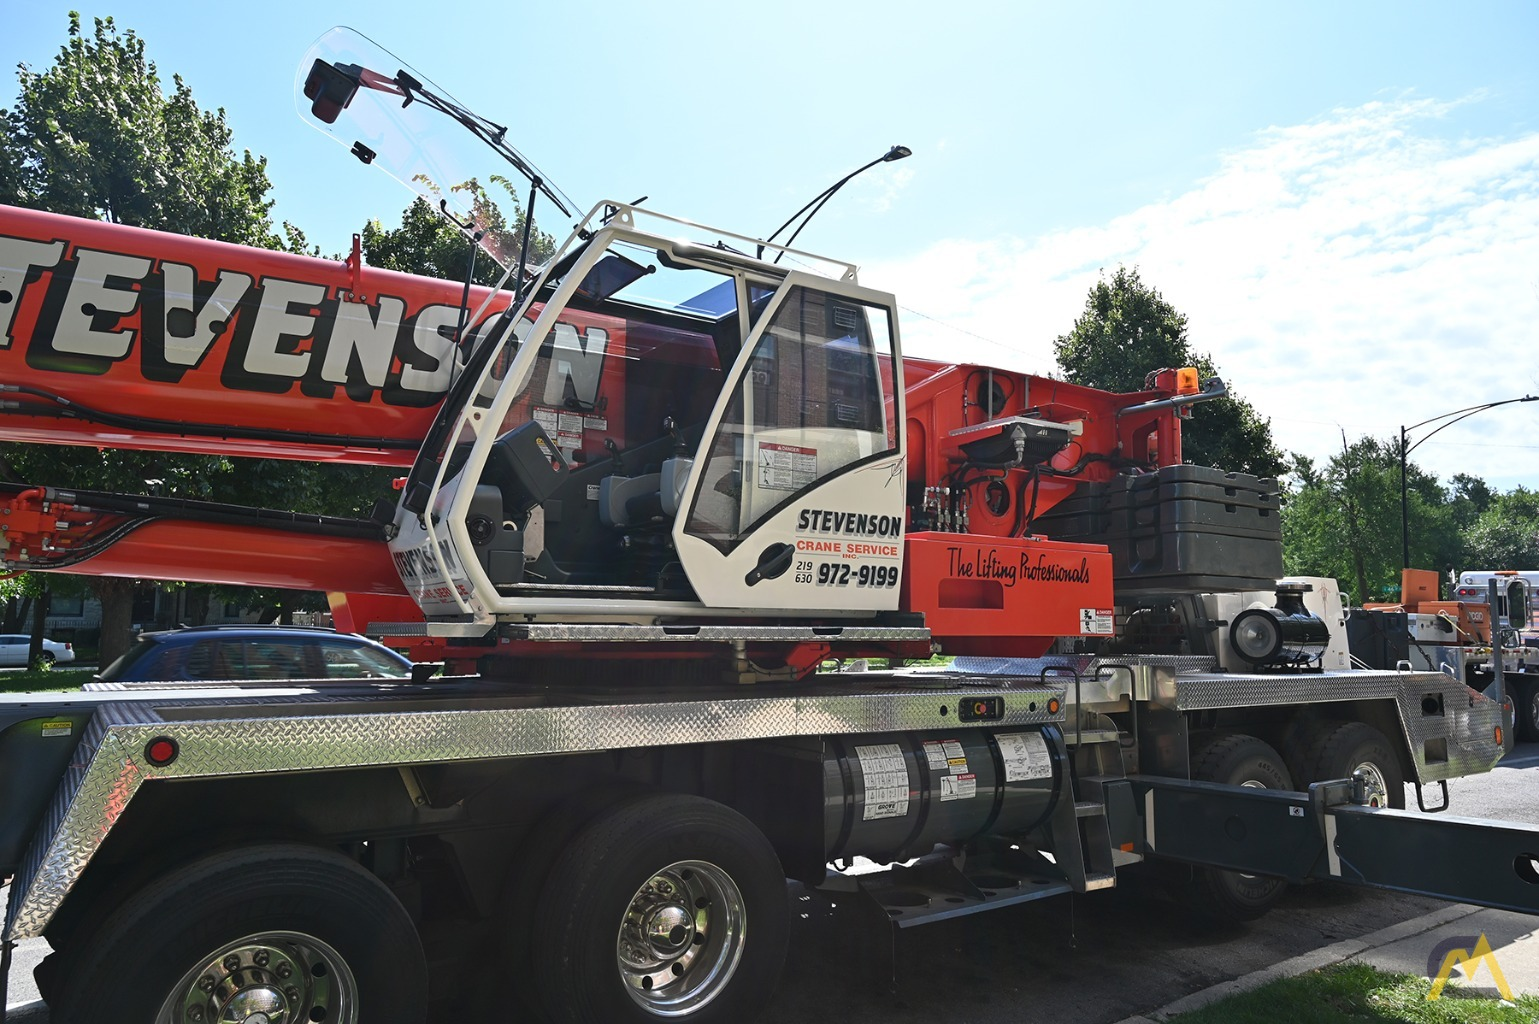 2013 Grove TMS9000E 110-Ton Hydraulic Truck Crane Motivated Seller, All Reasonable Offers Considered 1